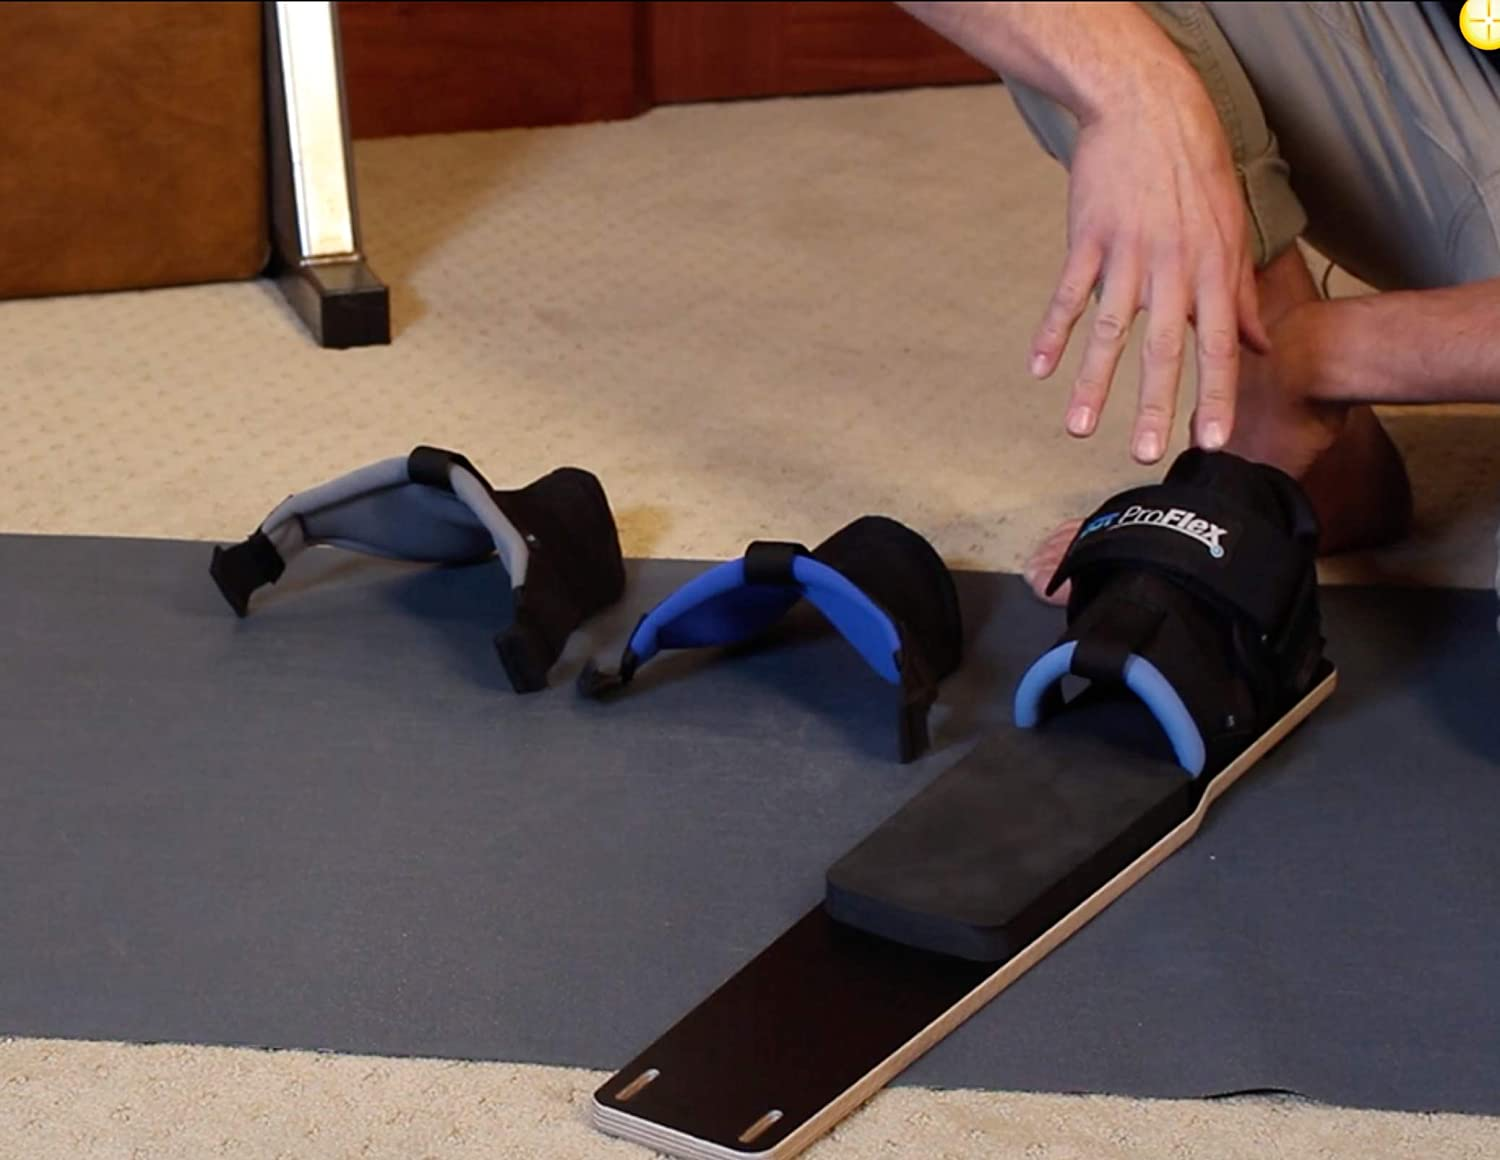 6 inches Longer Stretch Your Clients Hamstrings DCT Proflex Trainers Pack All 3 Sizing Straps Included Total Lower Body Leverage-Based Resistance Stretching Tool Hips /& Calves with Ease